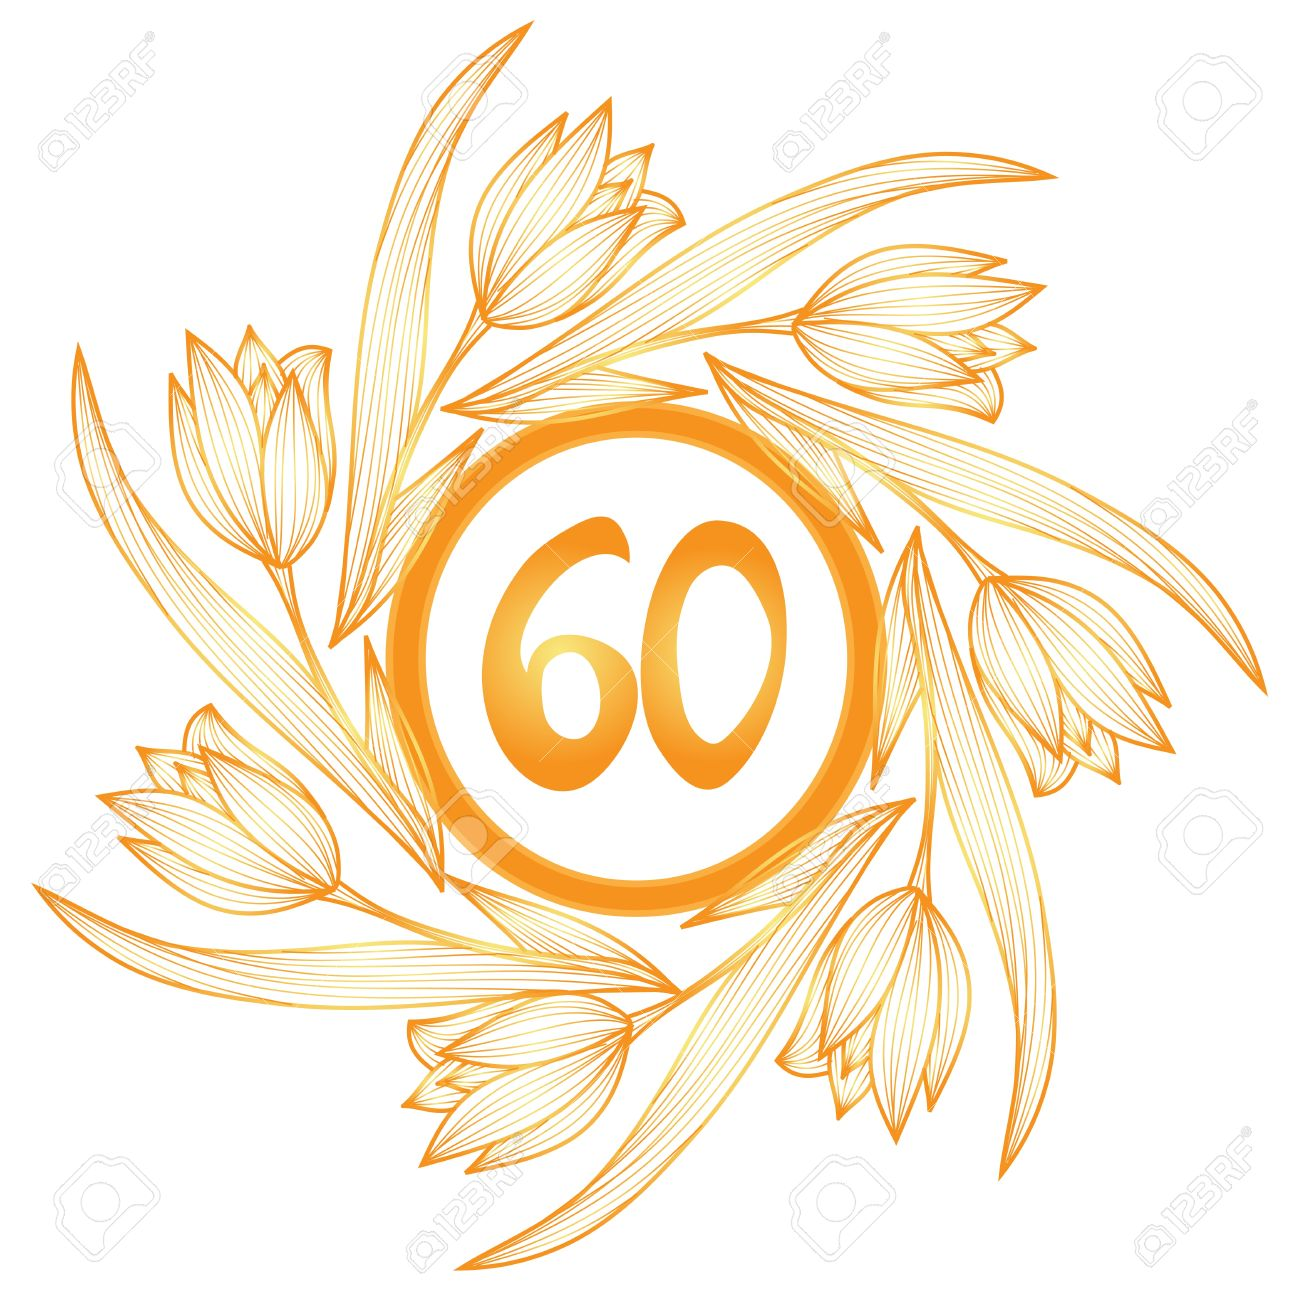 60th anniversary golden floral banner.